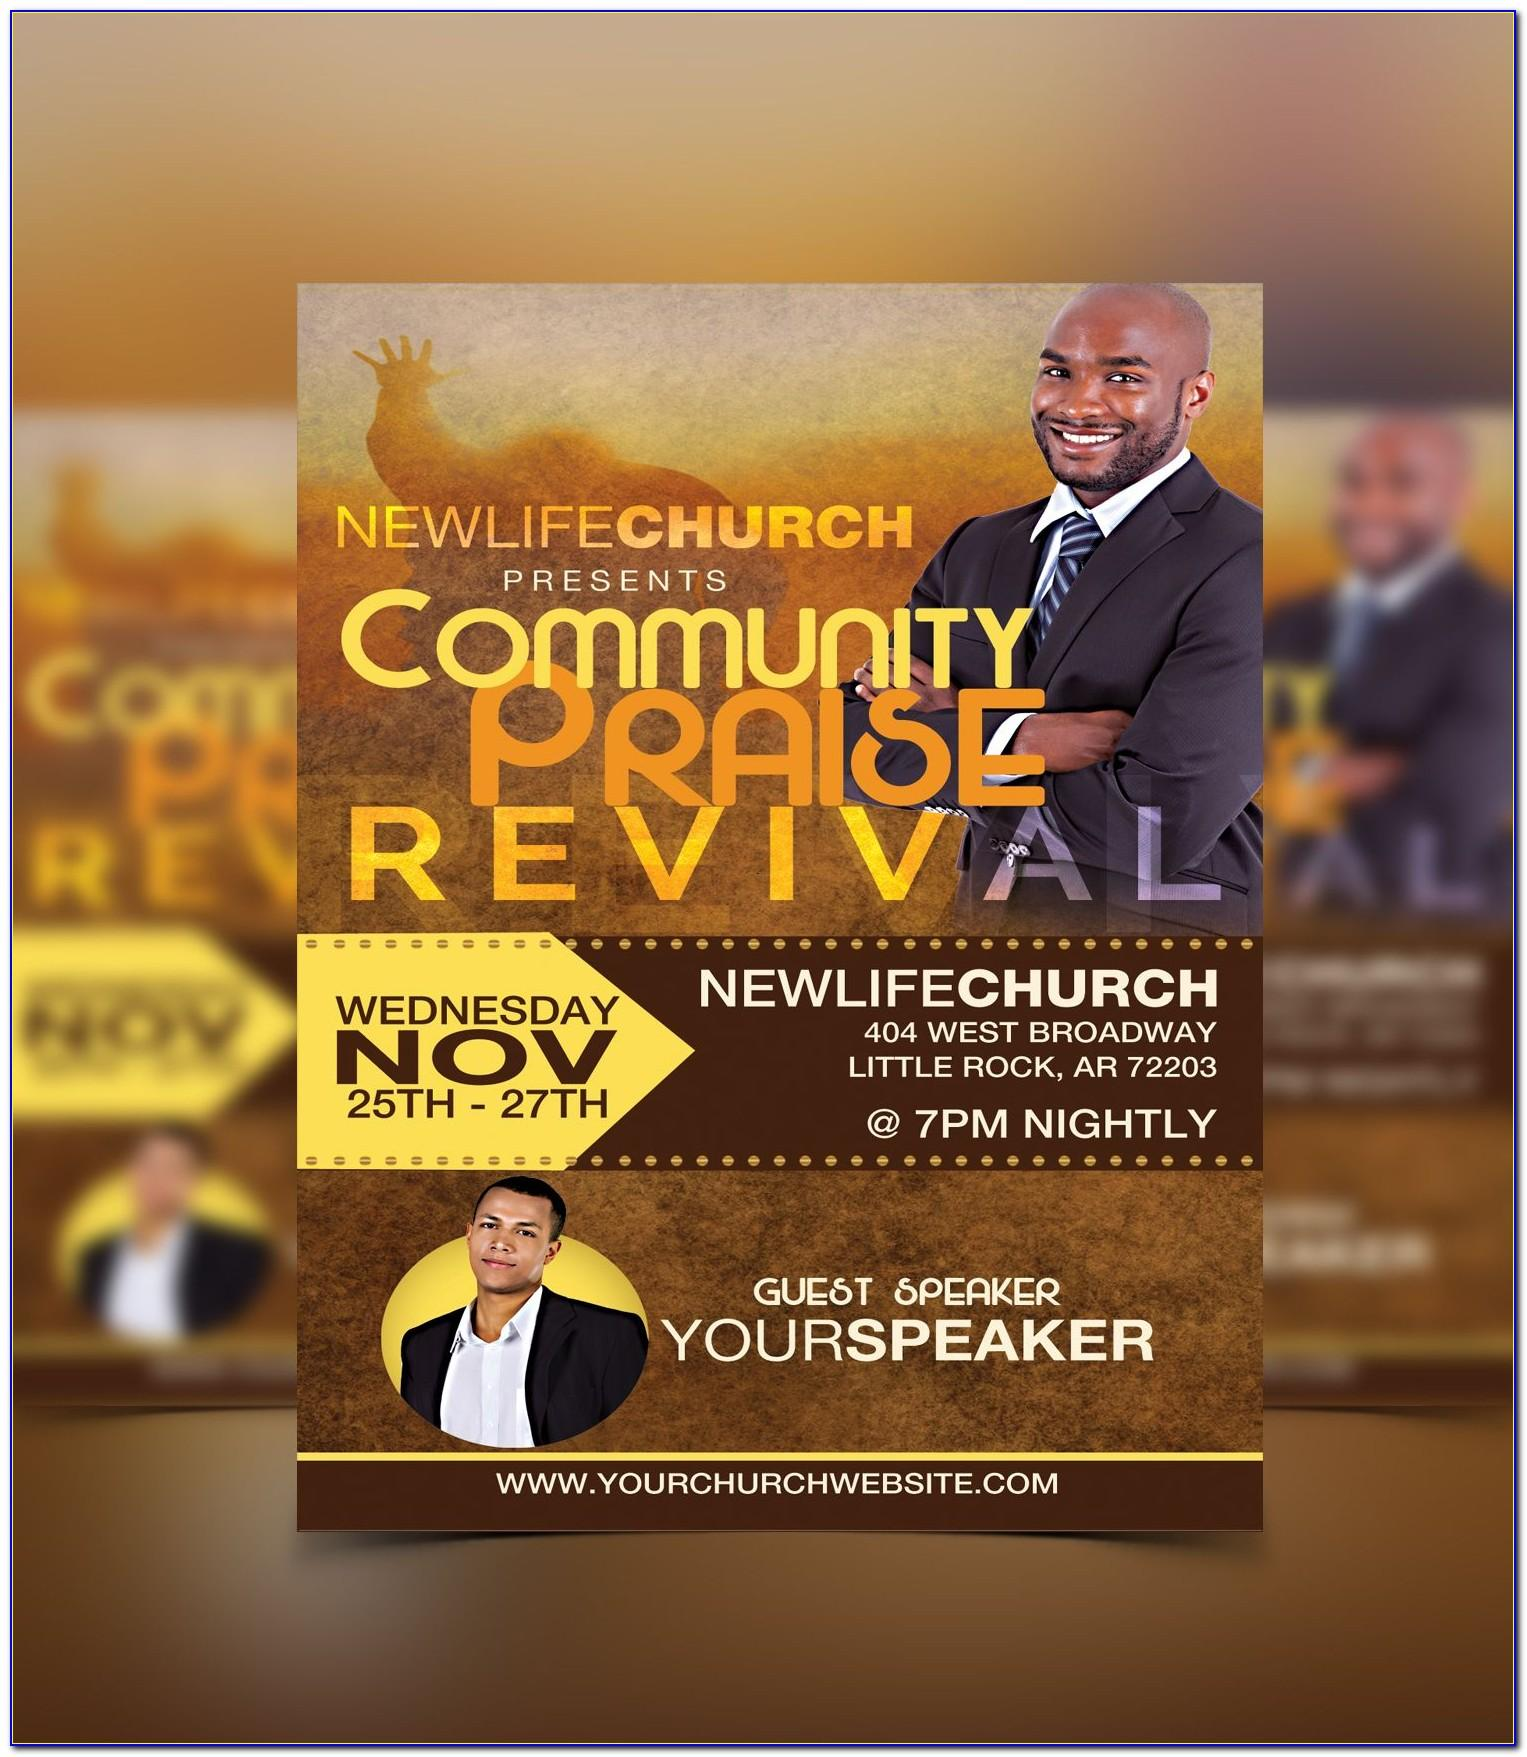 Free Church Revival Flyer Template Psd